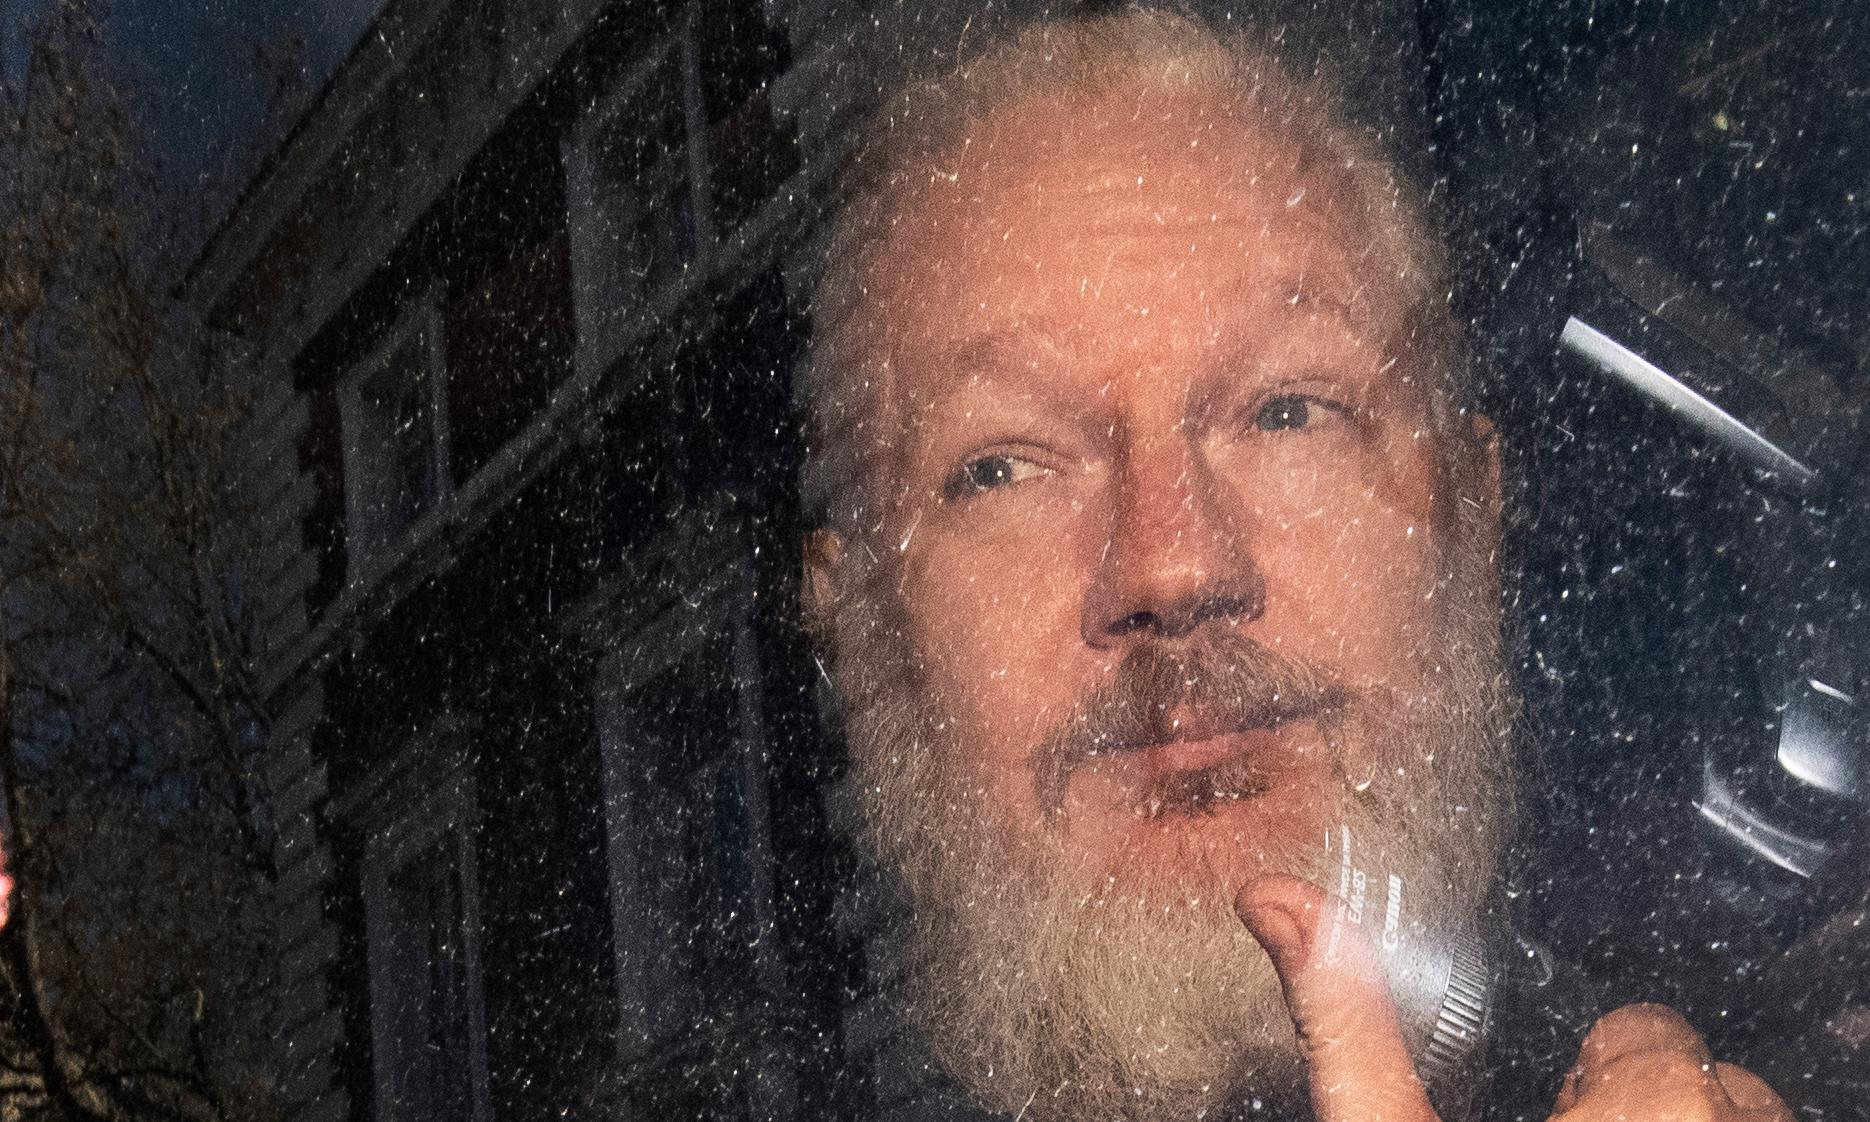 Lawyers complain about lack of access to Julian Assange in jail